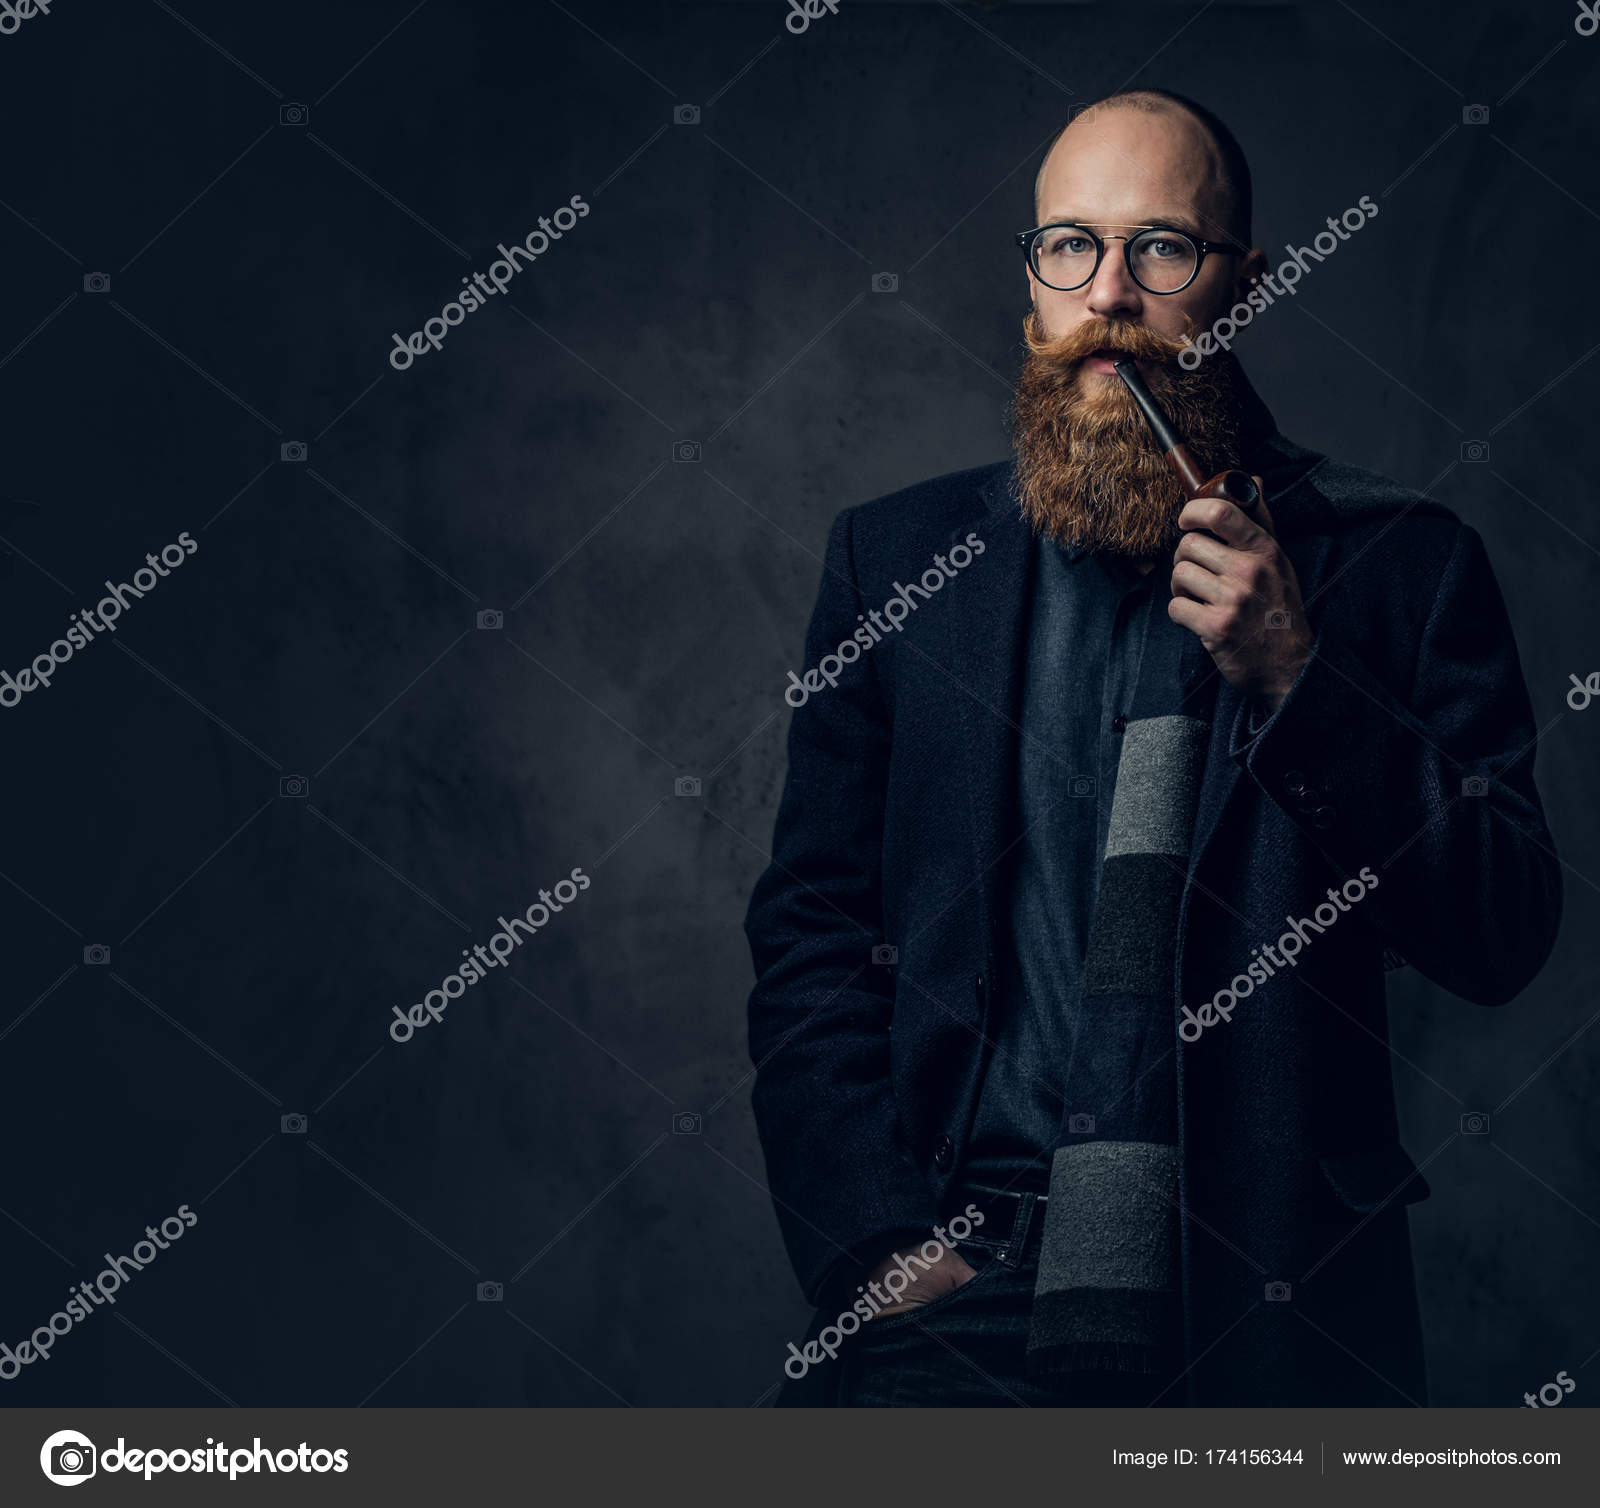 Cheveux roux pipe